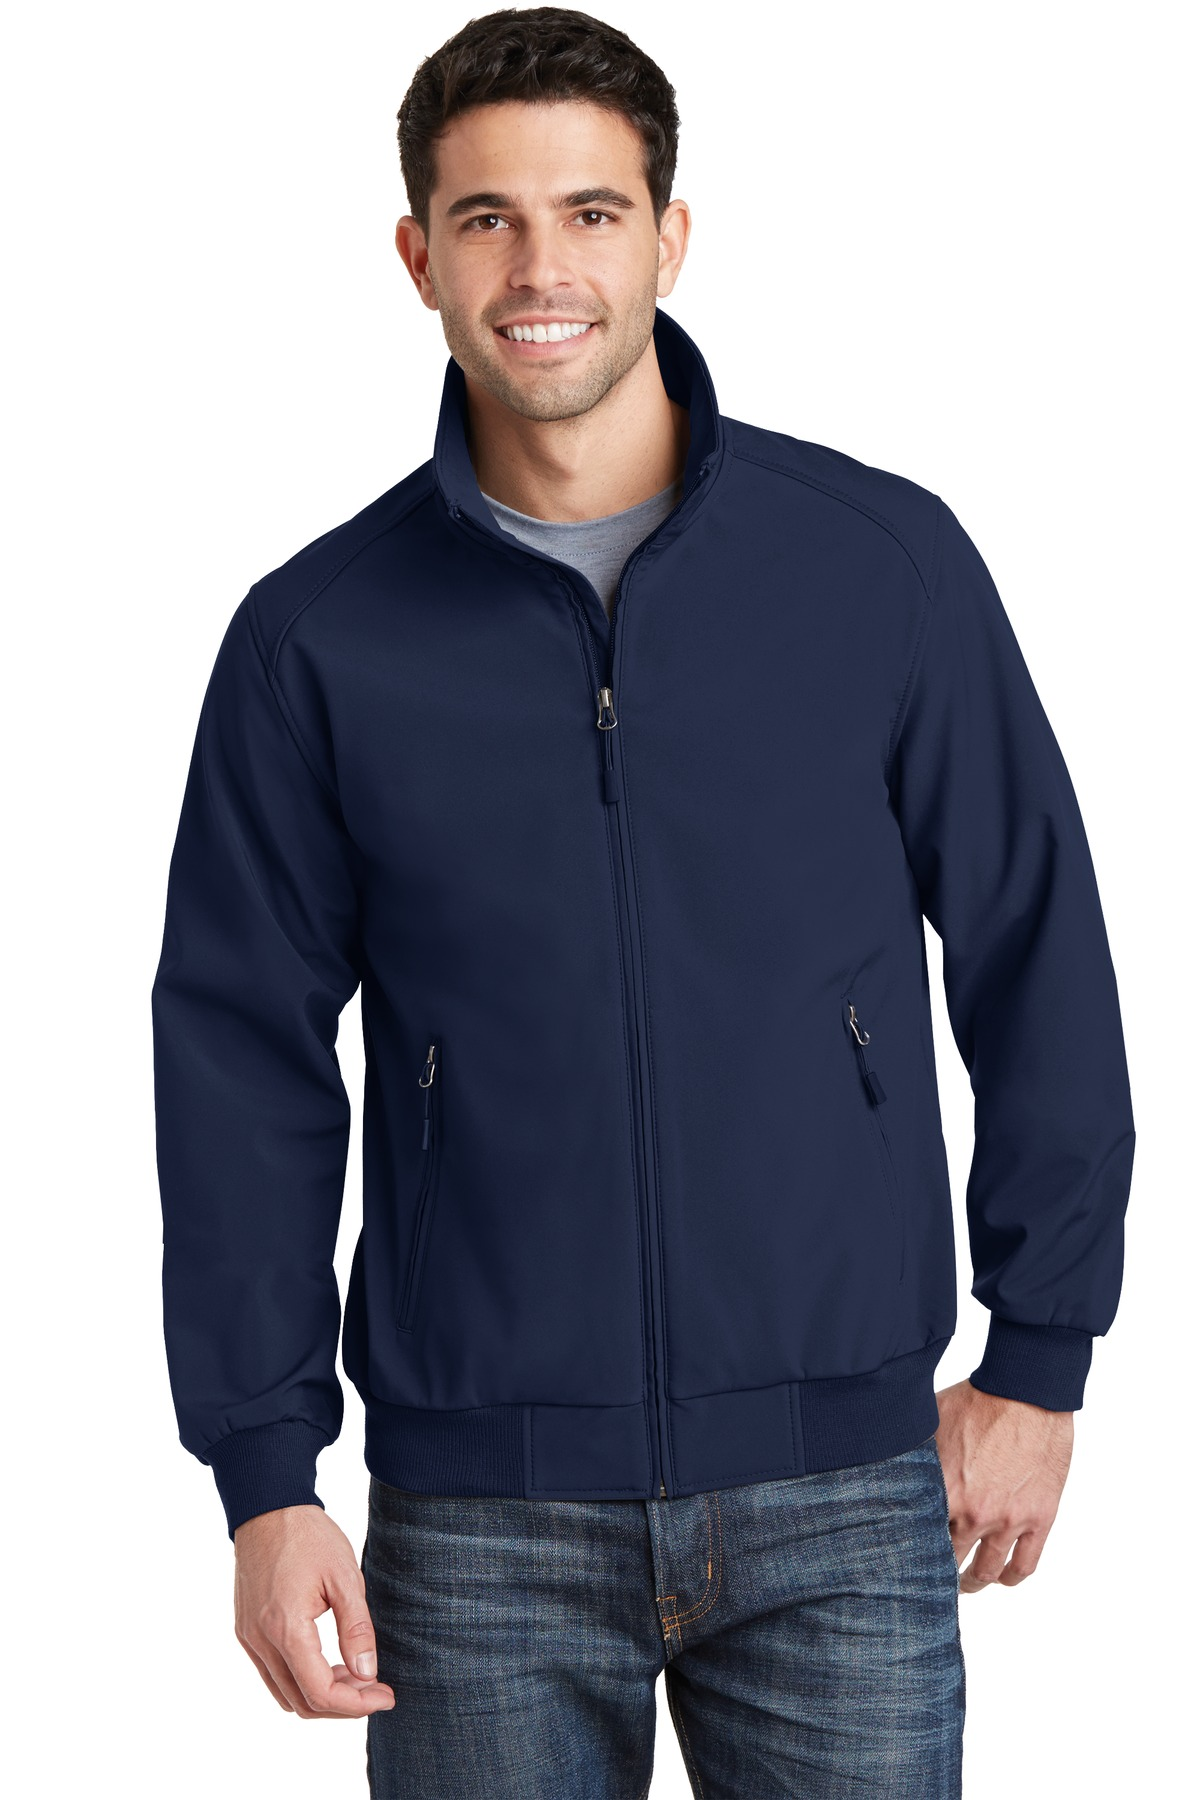 Port Authority  J337 - Soft Shell Bomber Jacket